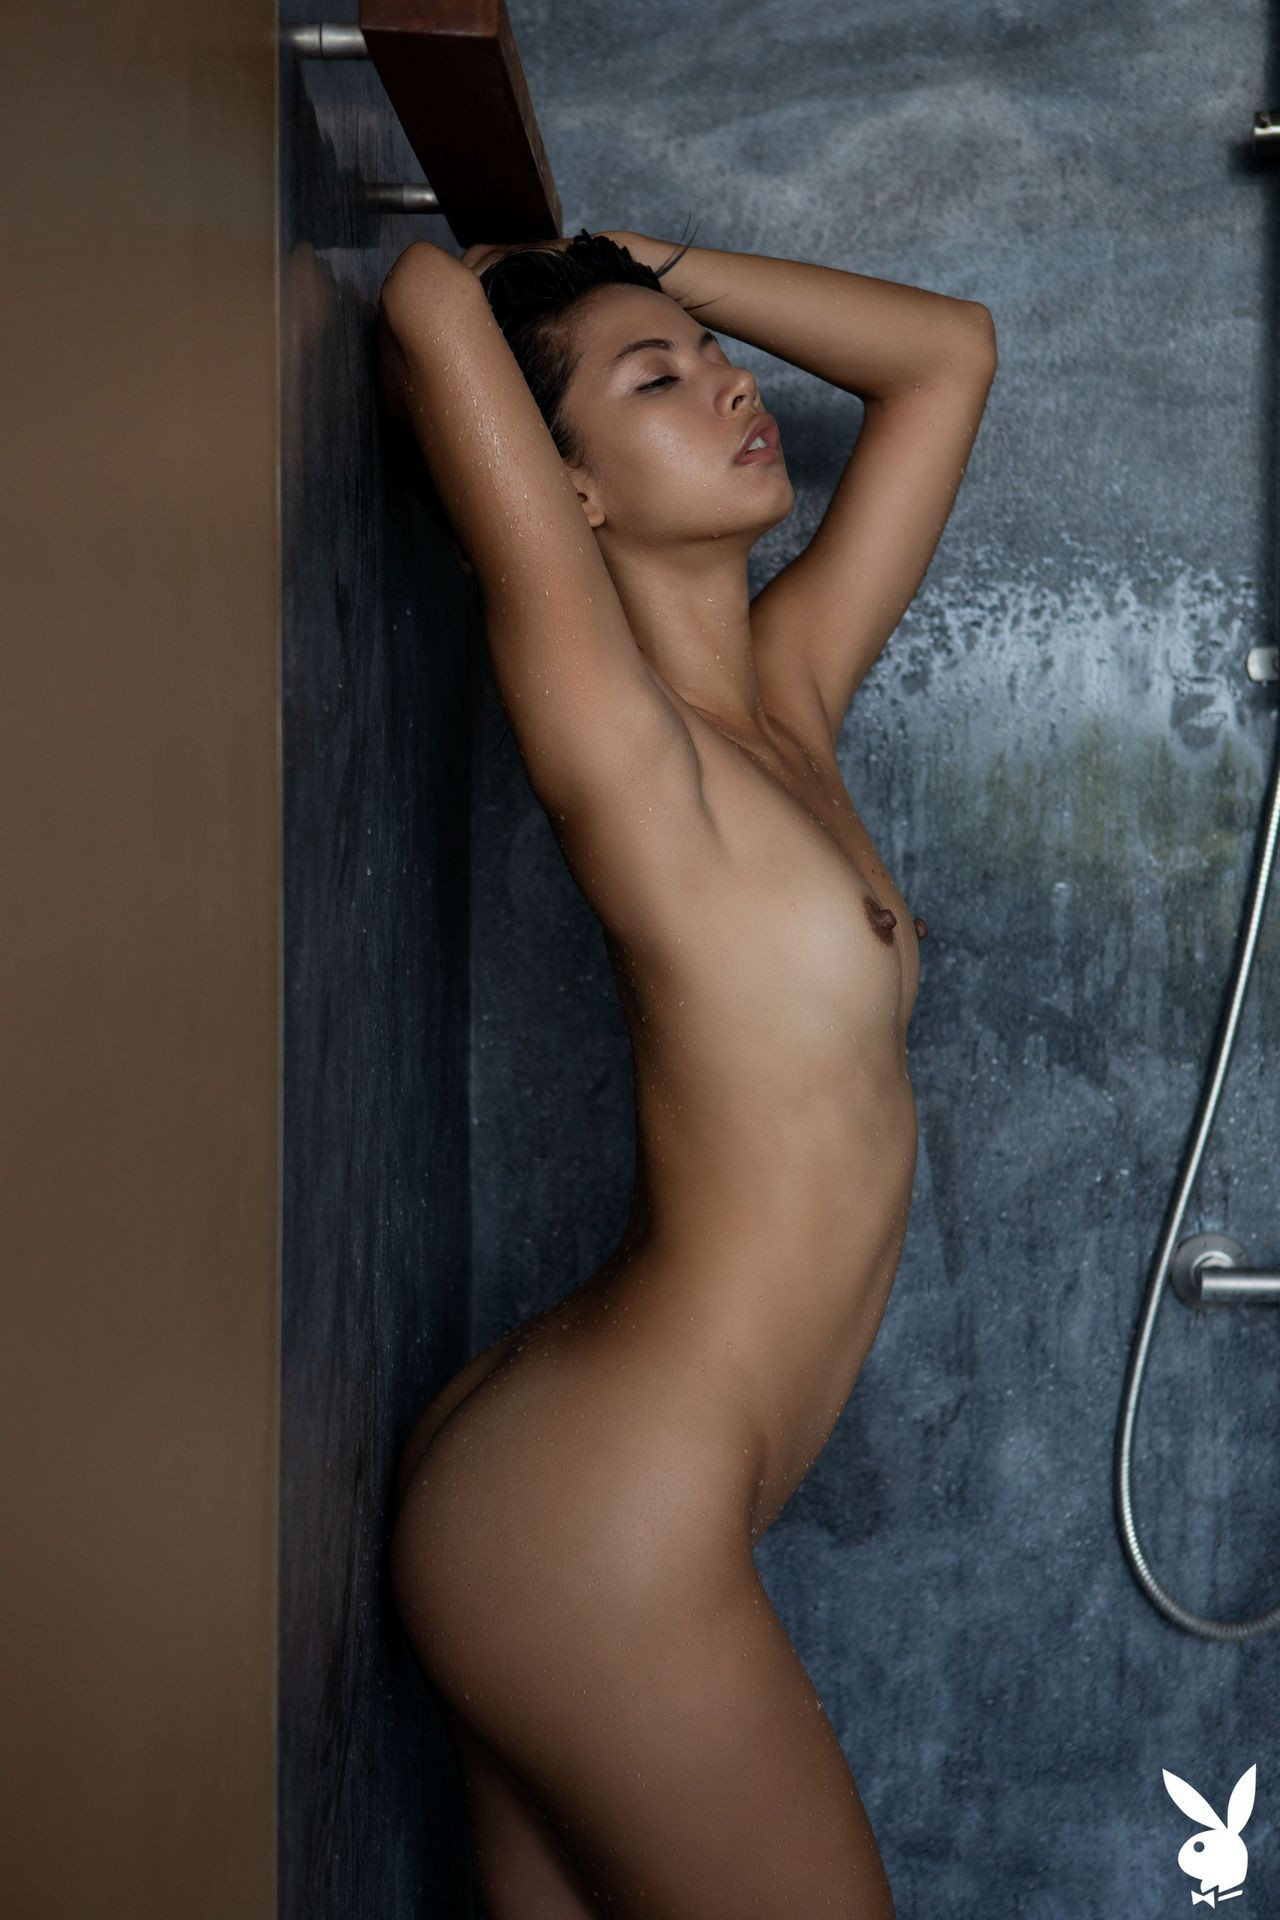 Cara Pin Nude Soft Shower thefappening.nu 26